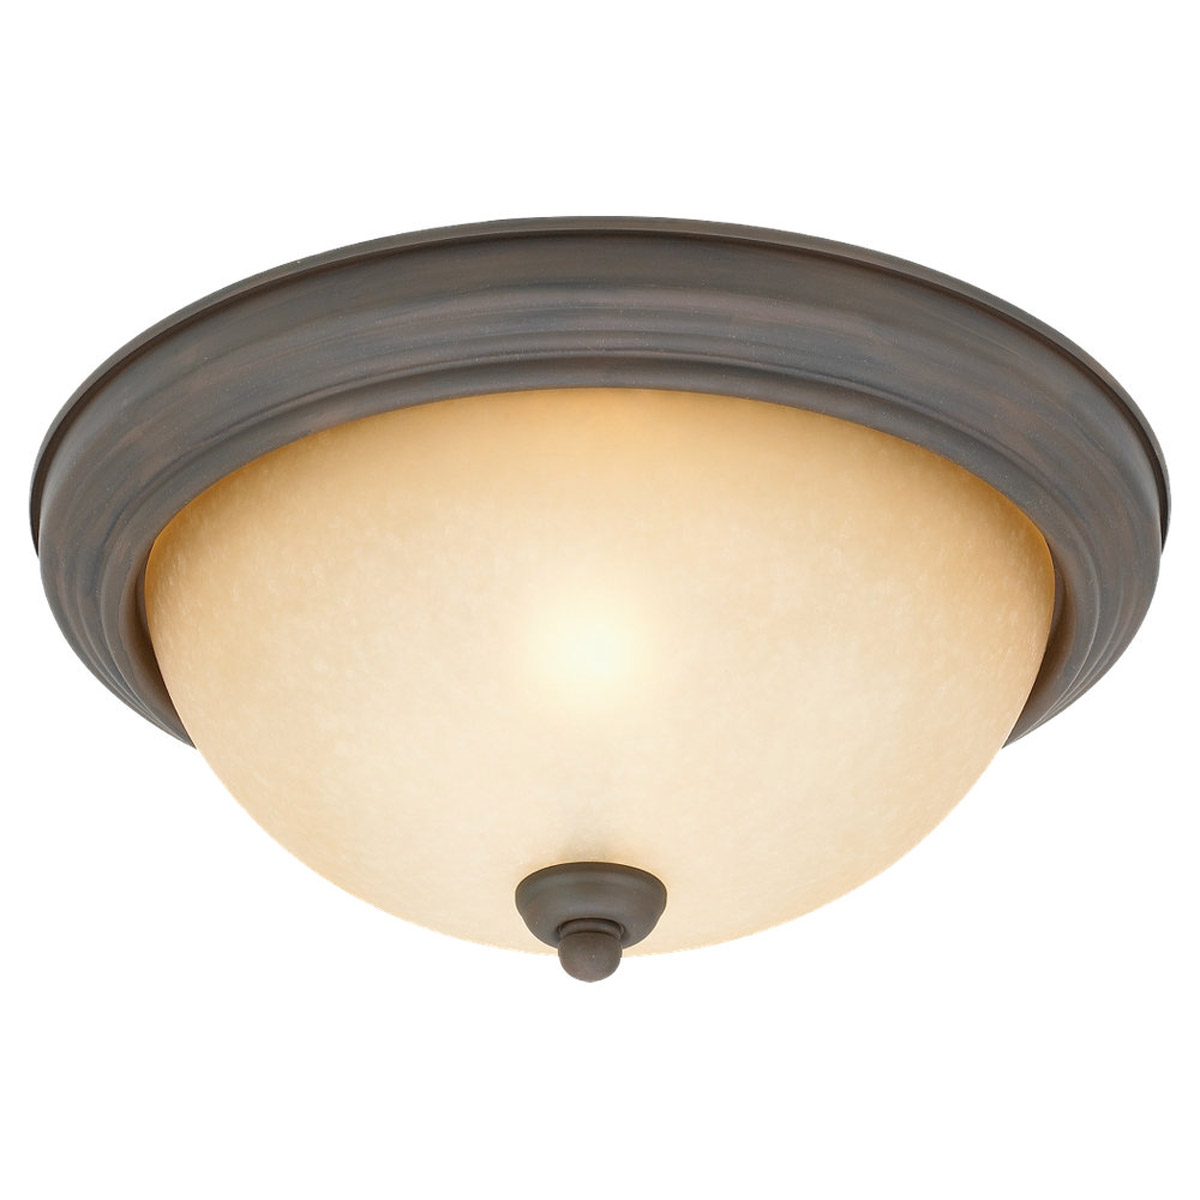 Sea Gull Lighting Montclaire 2 Light Flush Mount in Olde Iron 77064-72